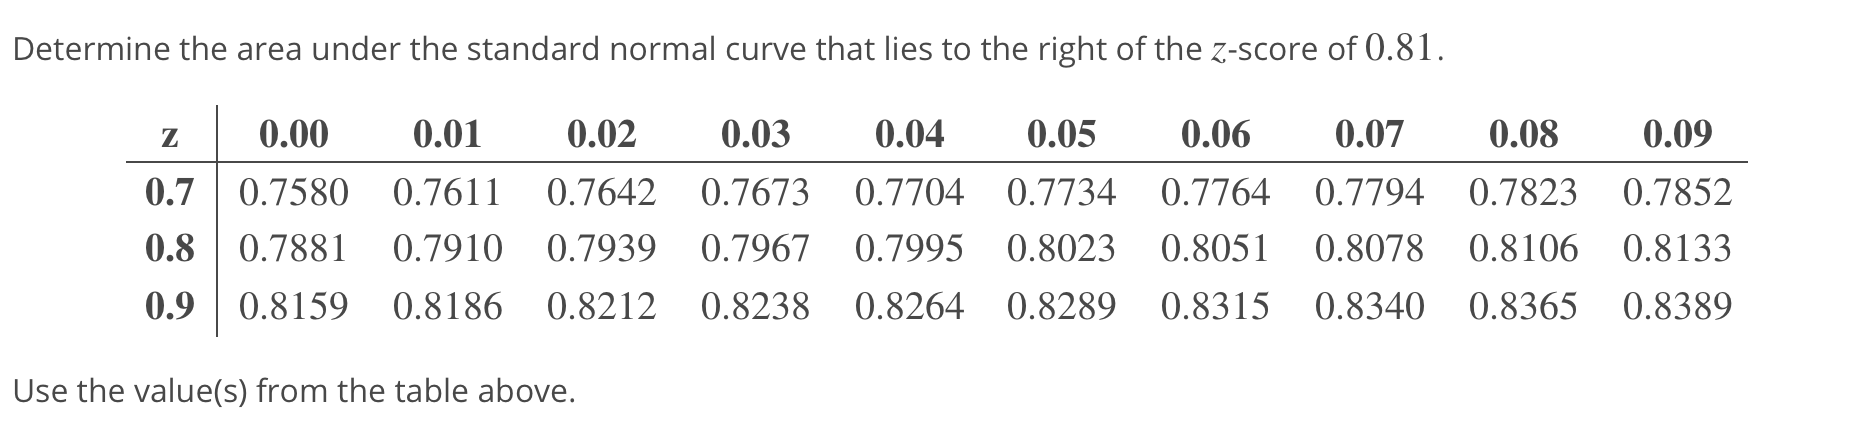 Determine the area under the standard normal curve that lies to the right of the z-score of 0.81 z 0.00 0.0 0.00.03 0.04 0.05 0.06 0.07 0.08 0.09 0.7 0.7580 0.7611 0.7642 0.7673 0.7704 0.7734 0.7764 0.7794 0.7823 0.7852 0.80.7881 0.7910 0.7939 0.7967 0.7995 0.8023 0.8051 0.8078 0.8106 0.8133 0.90.8159 0.8186 0.8212 0.8238 0.8264 0.8289 0.8315 0.8340 0.8365 0.8389 Use the value(s) from the table above.